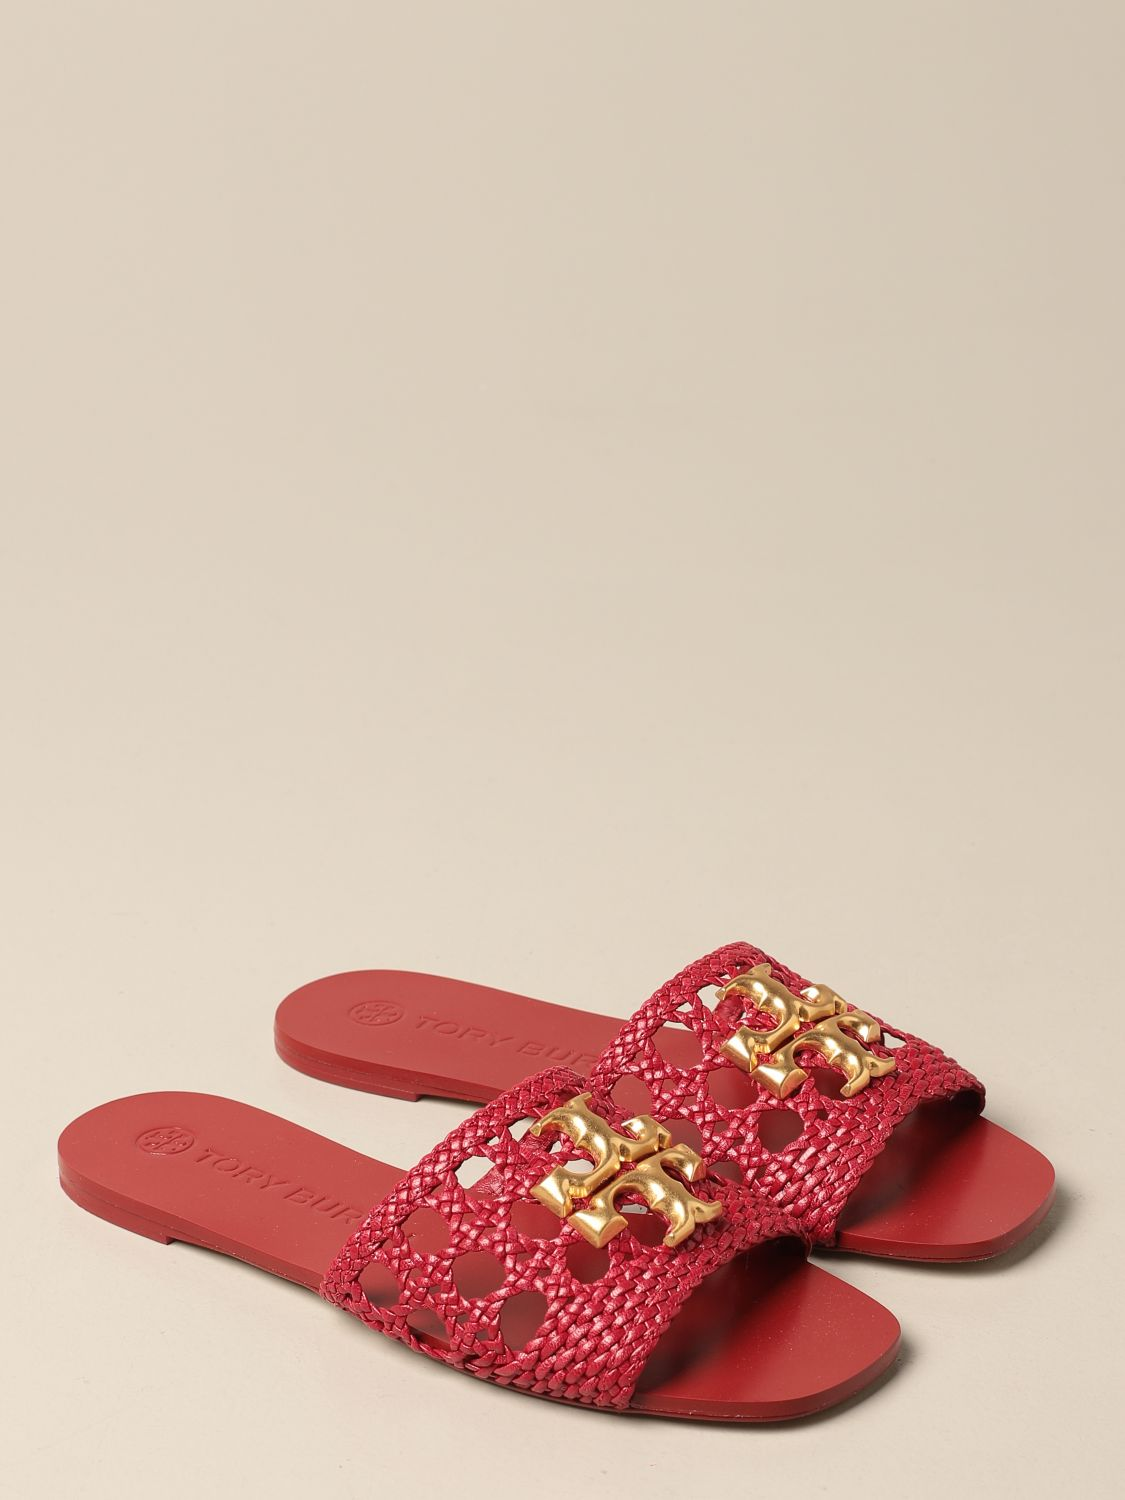 Flat sandals Tory Burch: Tory Burch sandals in woven leather with logo red 2